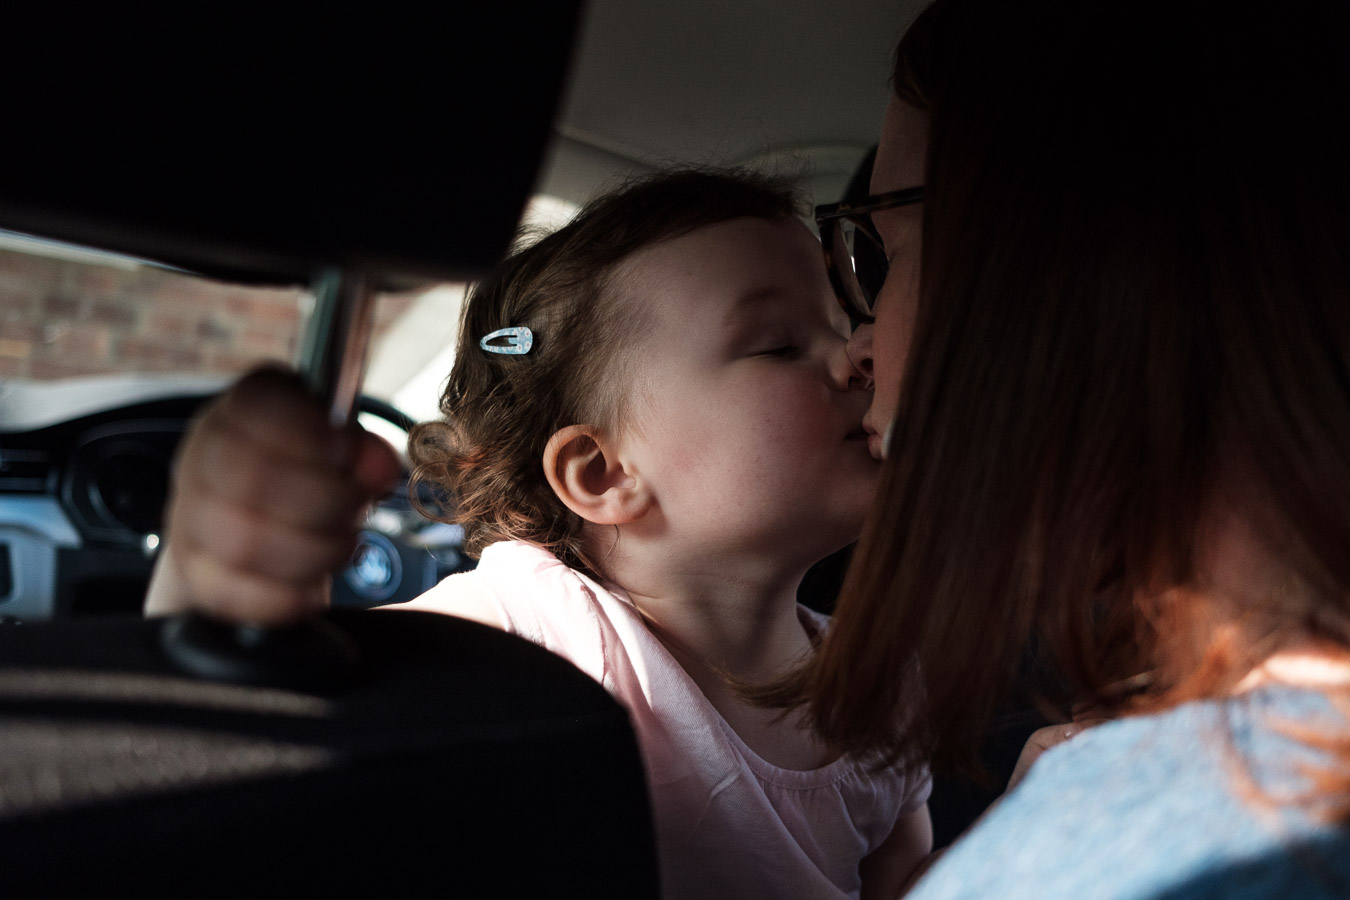 mother and daughter kiss in parked car.